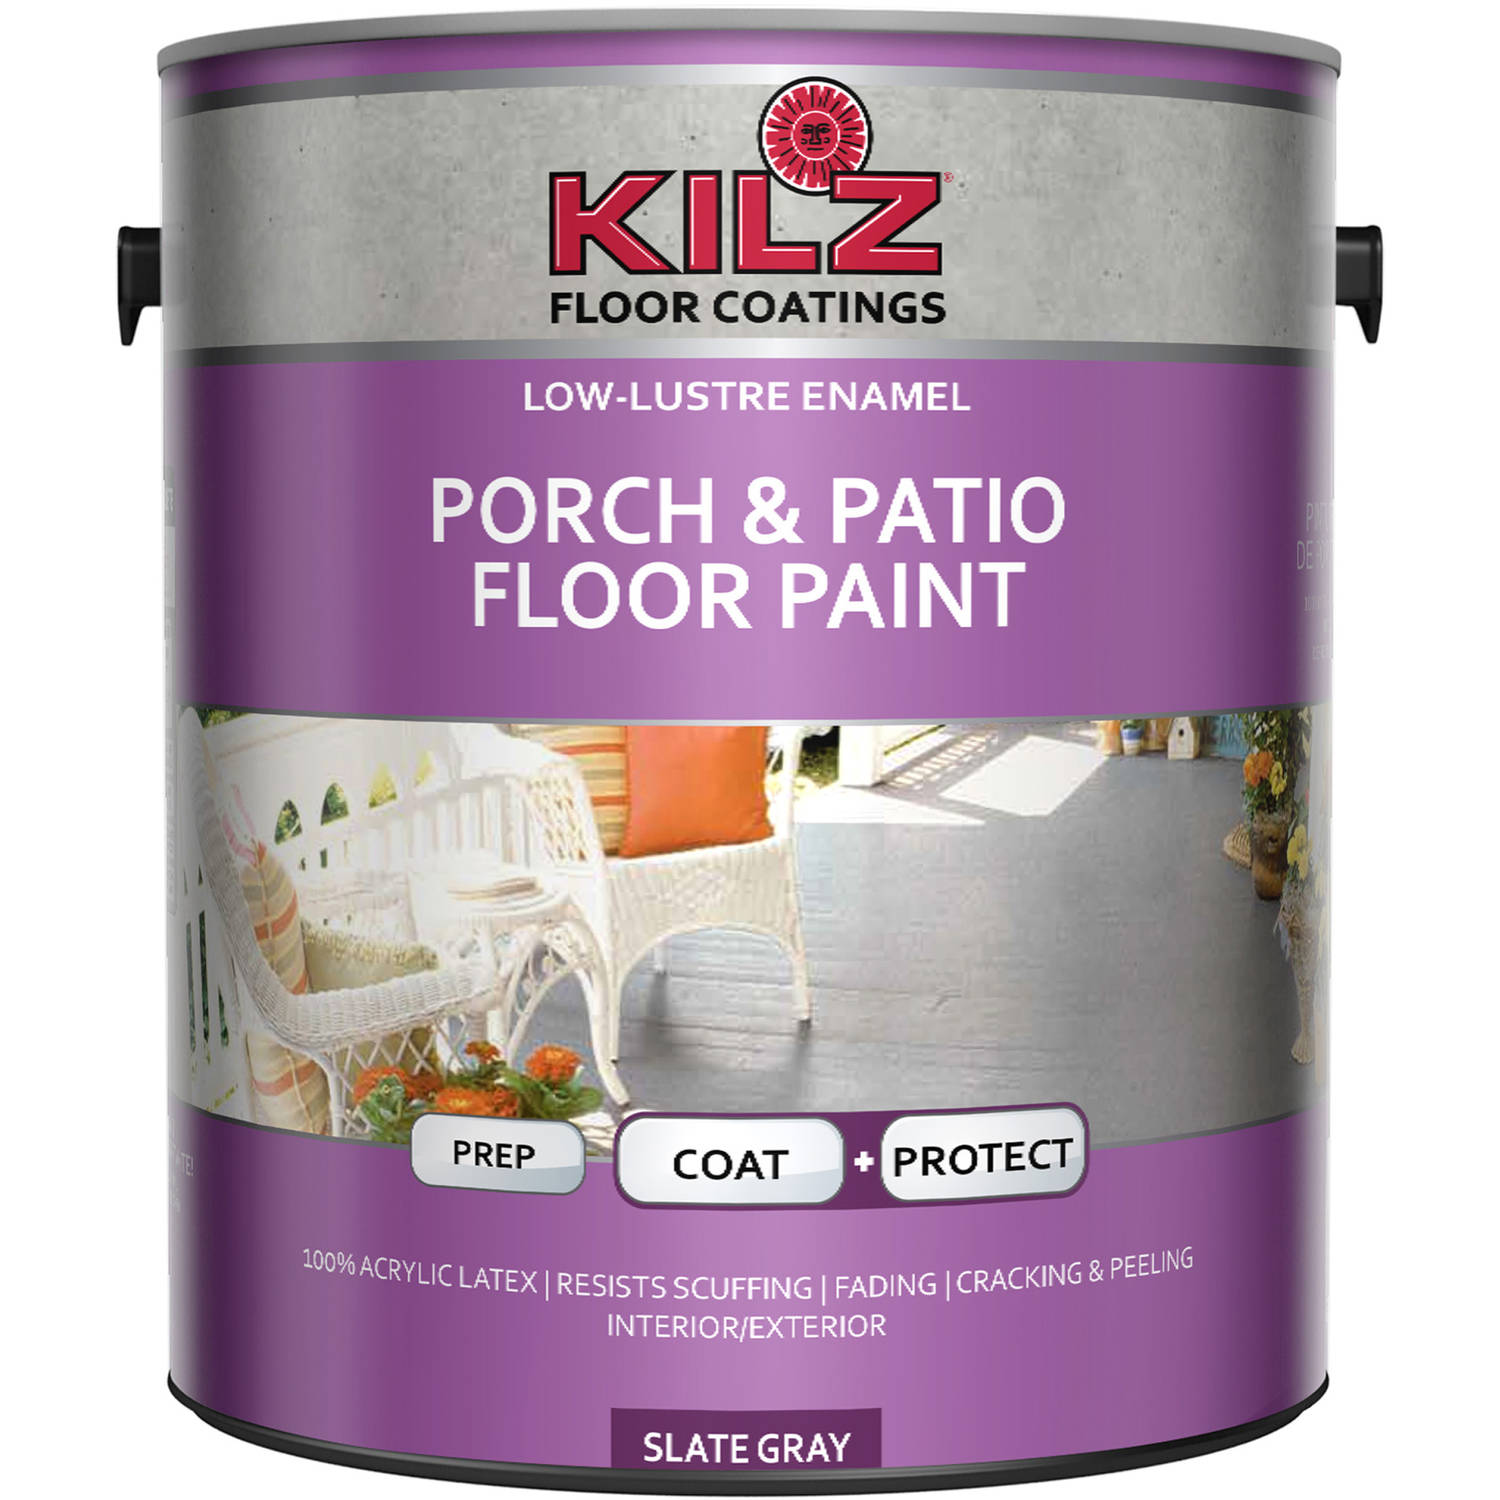 KILZ Interior/Exterior Enamel Porch and Patio Latex Floor Paint, Low-Lustre, 1 gal